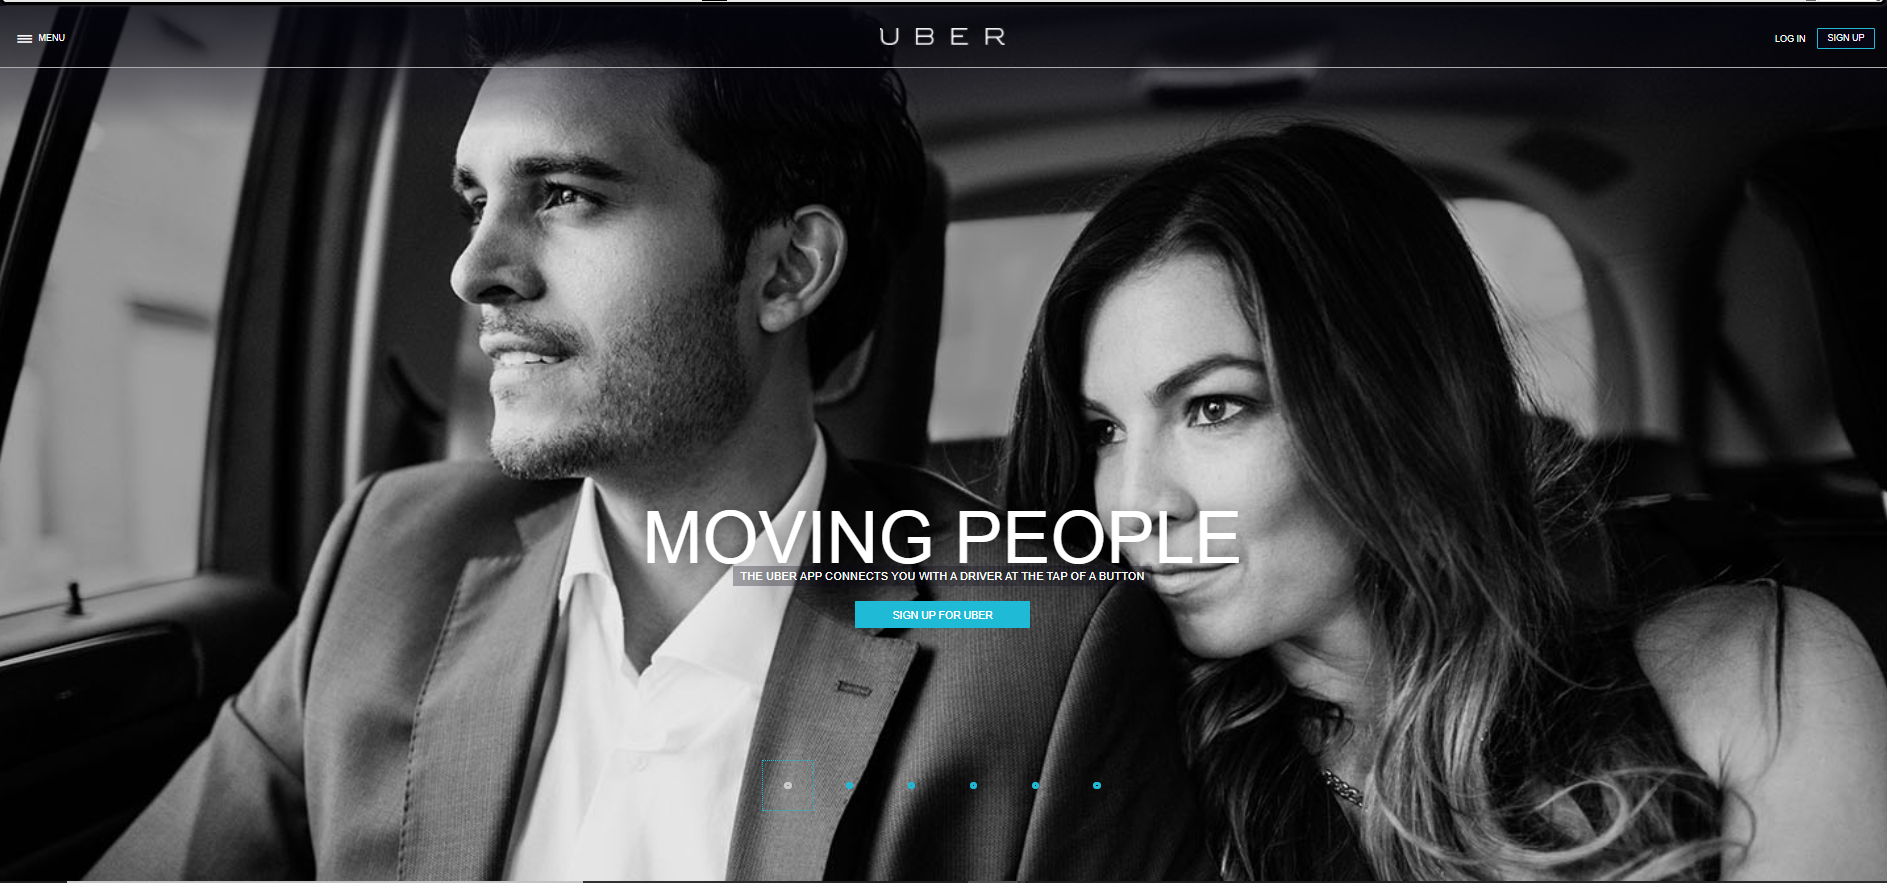 Uber_2013a.png